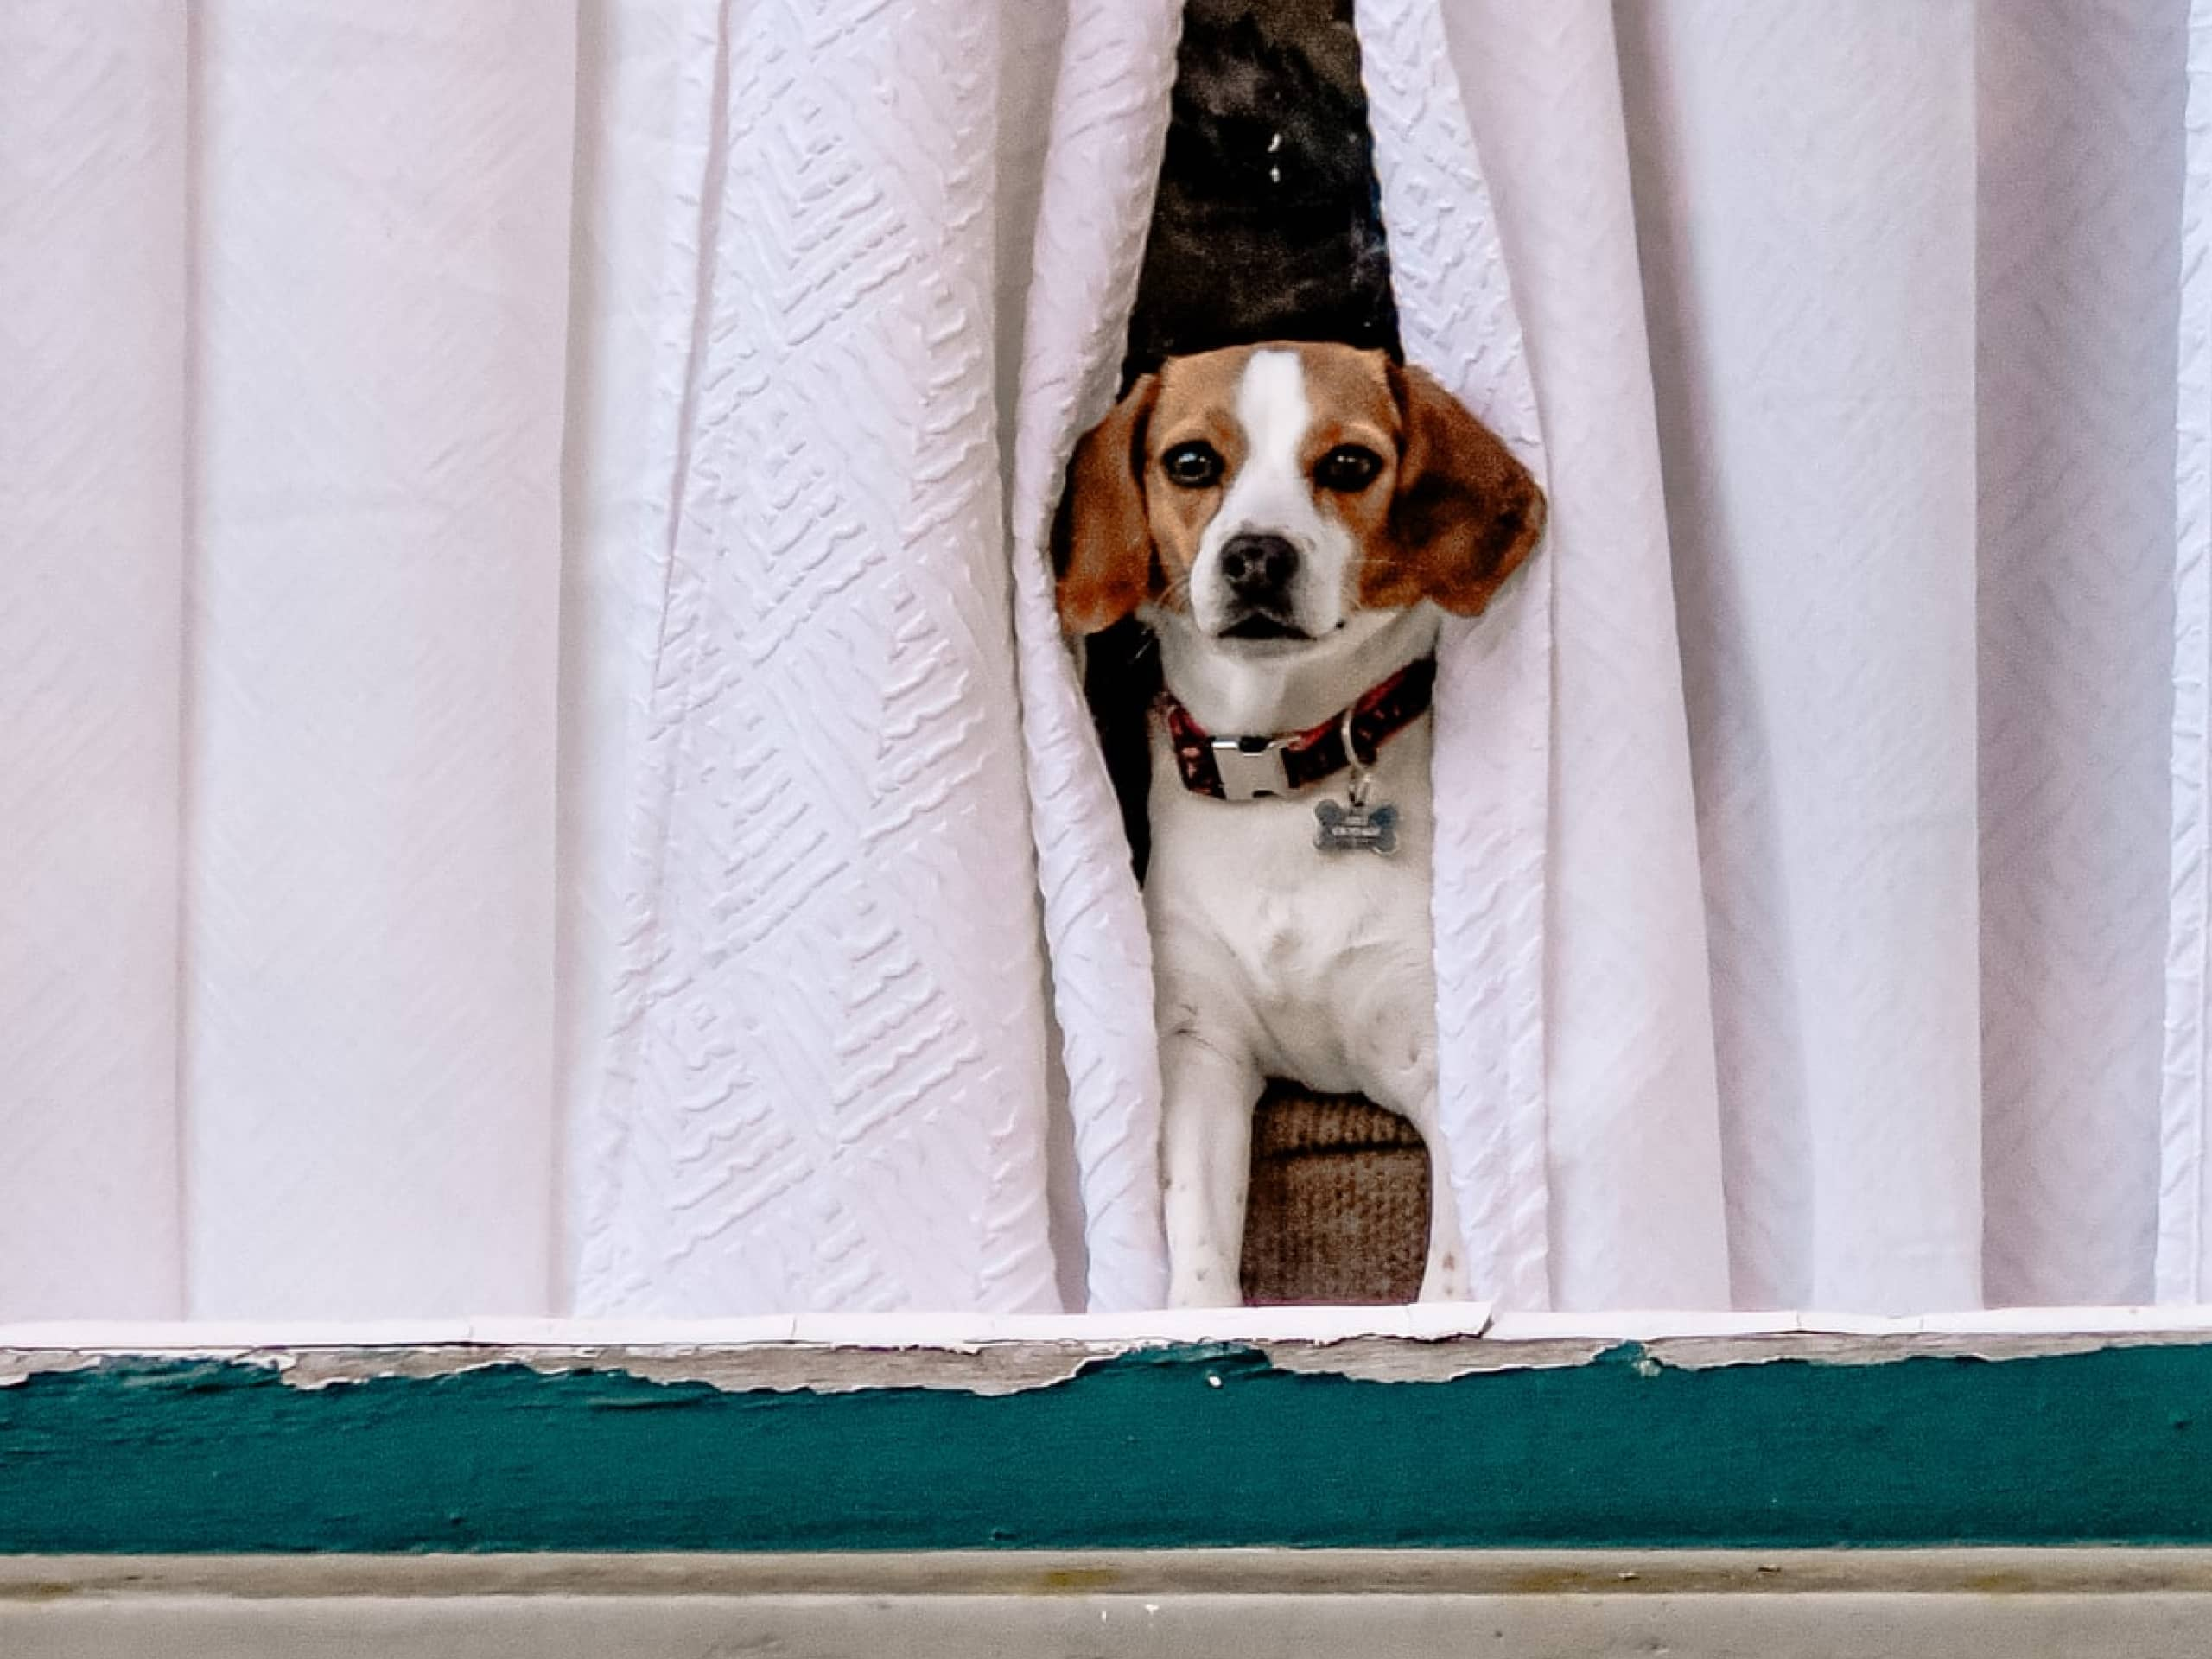 Beagle looking out of curtains through a window.